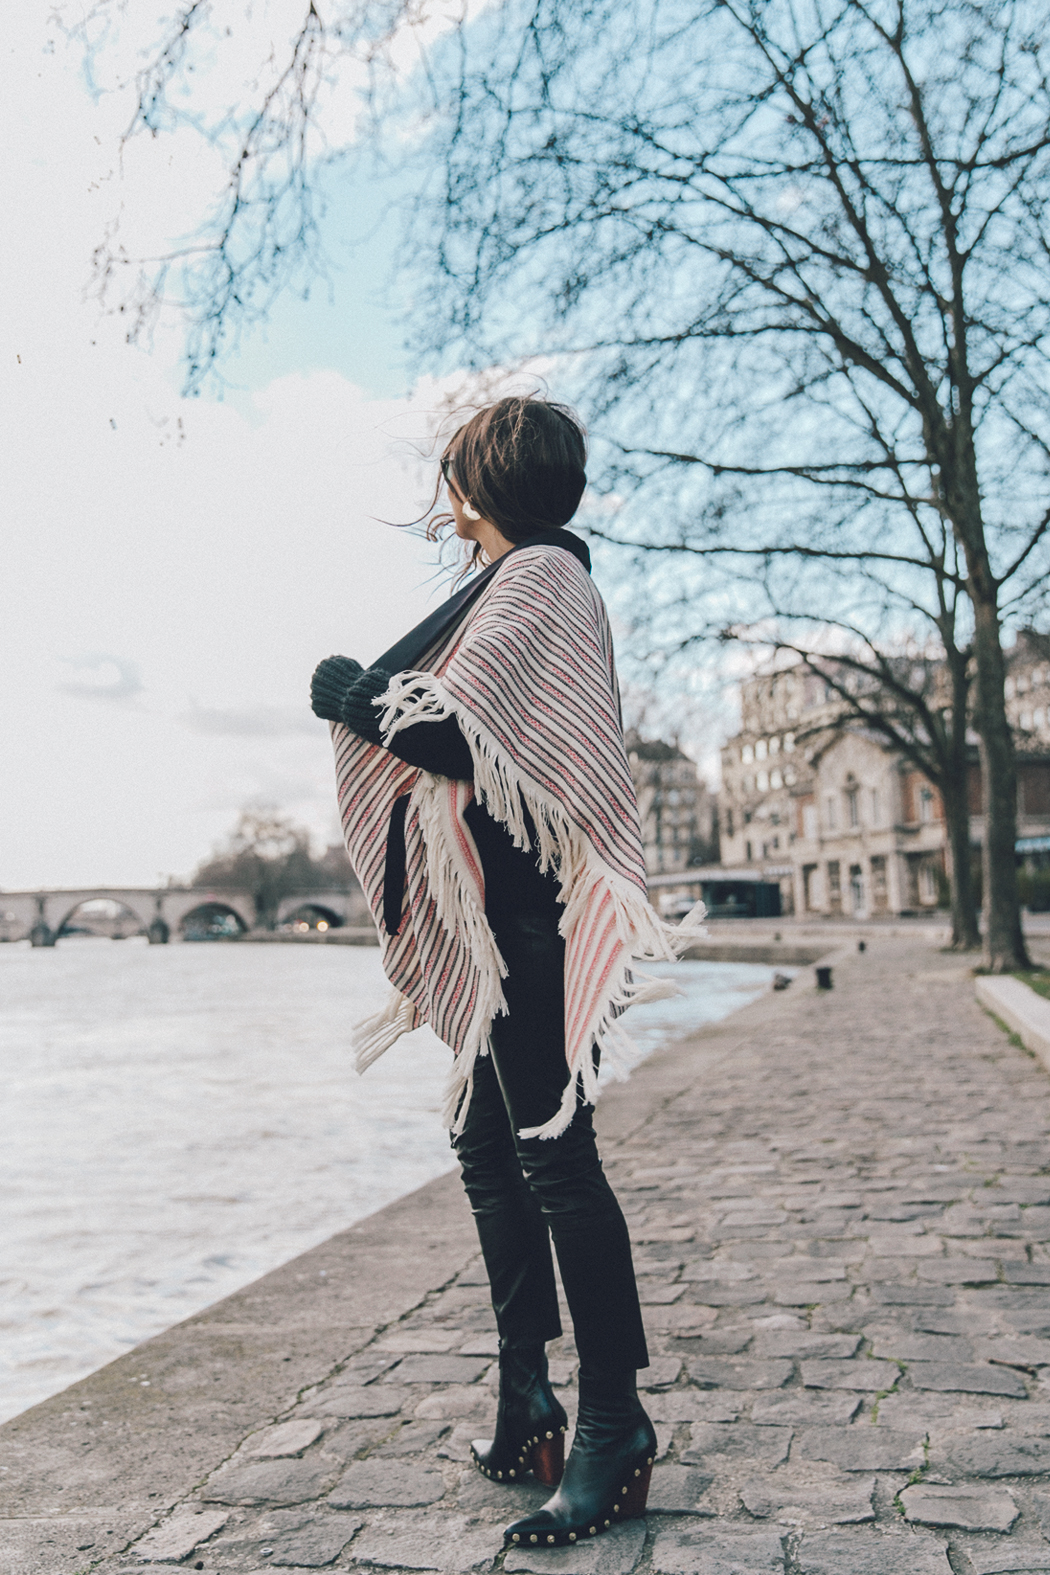 Sara Escudero is wearing a gorgeous striped poncho with frayed detail at the seams; an easy and stylish spring look which you can try! Pair this item with studded boots to steal Sara's authentic style. Poncho: Majexclusive Edit 8, Jersey: Sales, Leggings: Reiss, Booties: Celine.